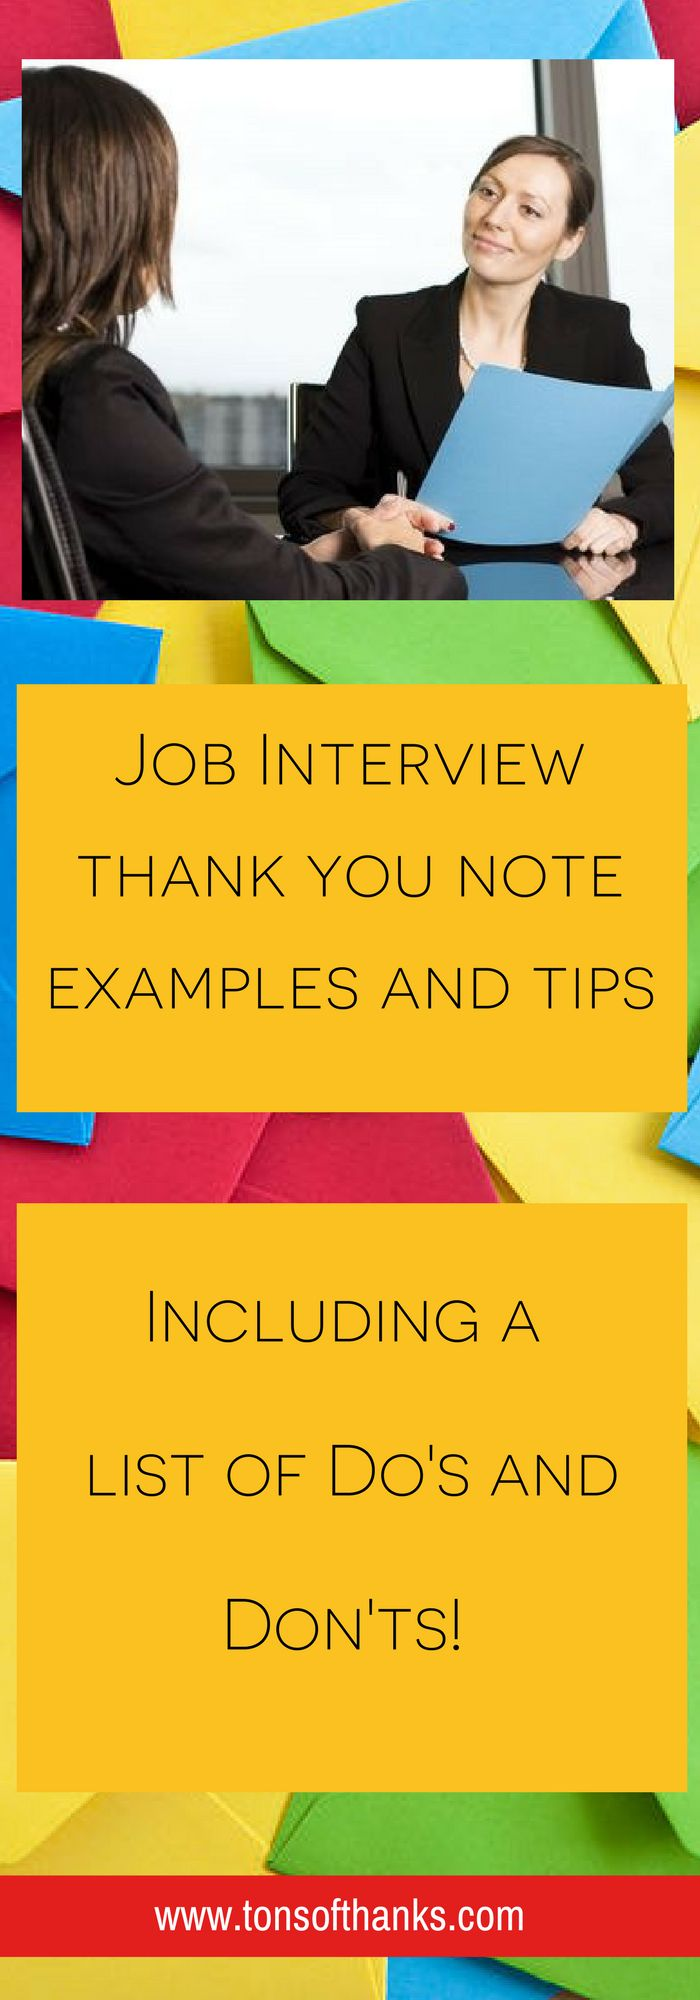 17 best images about job interview thank you note examples and job interview thank you note examples also includes a list of what to do